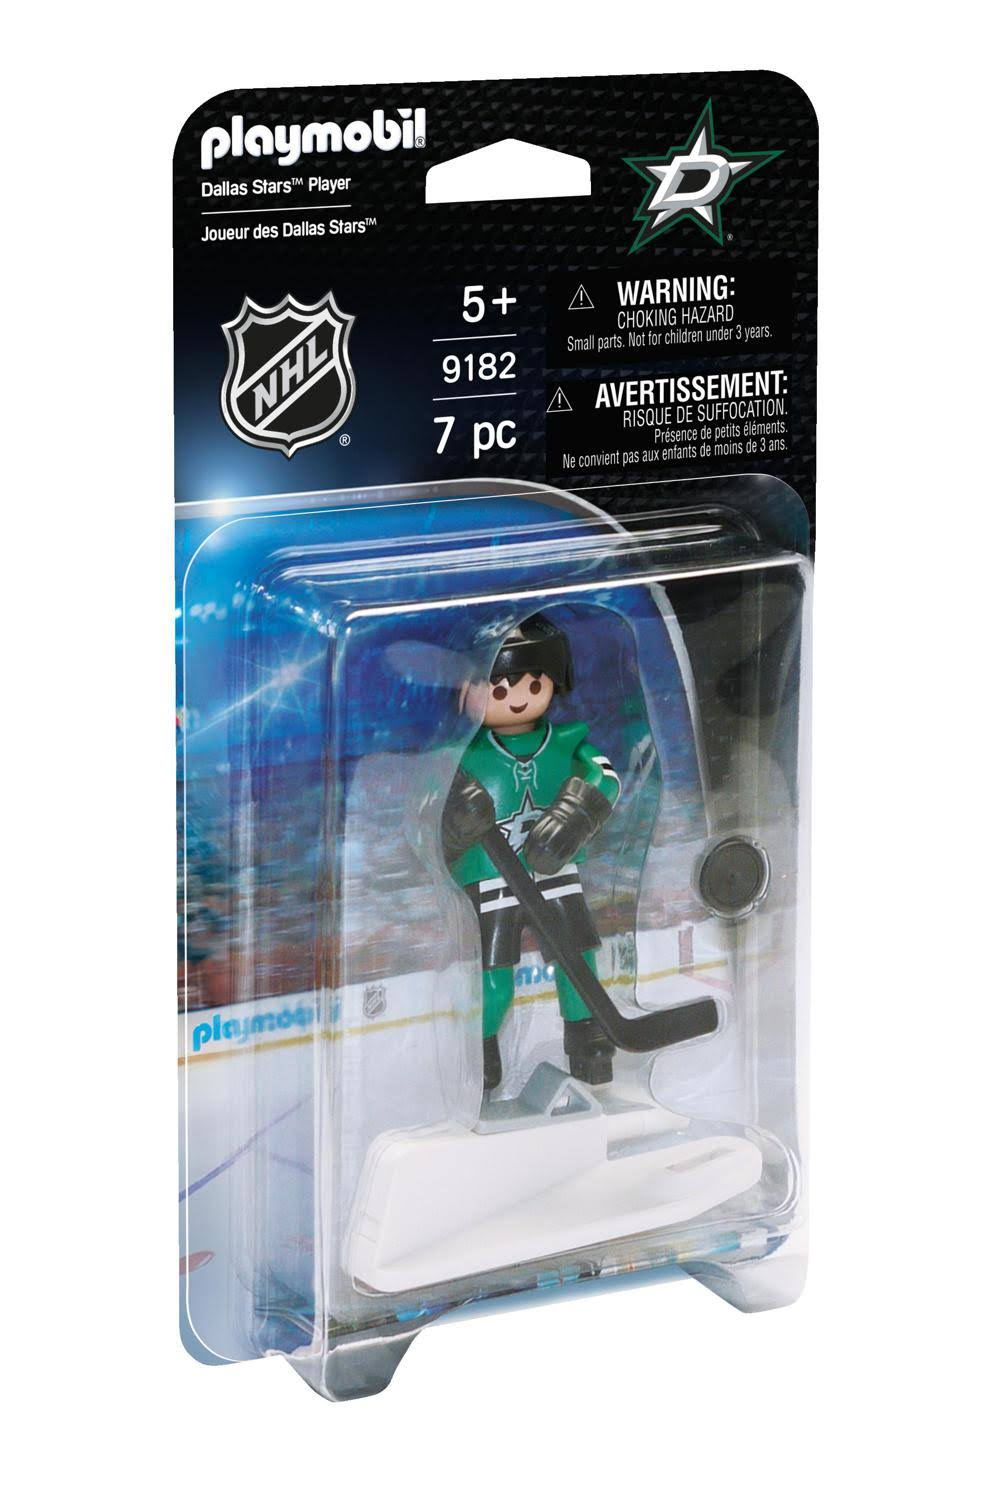 Playmobil NHL Dallas Stars Player Action Figure